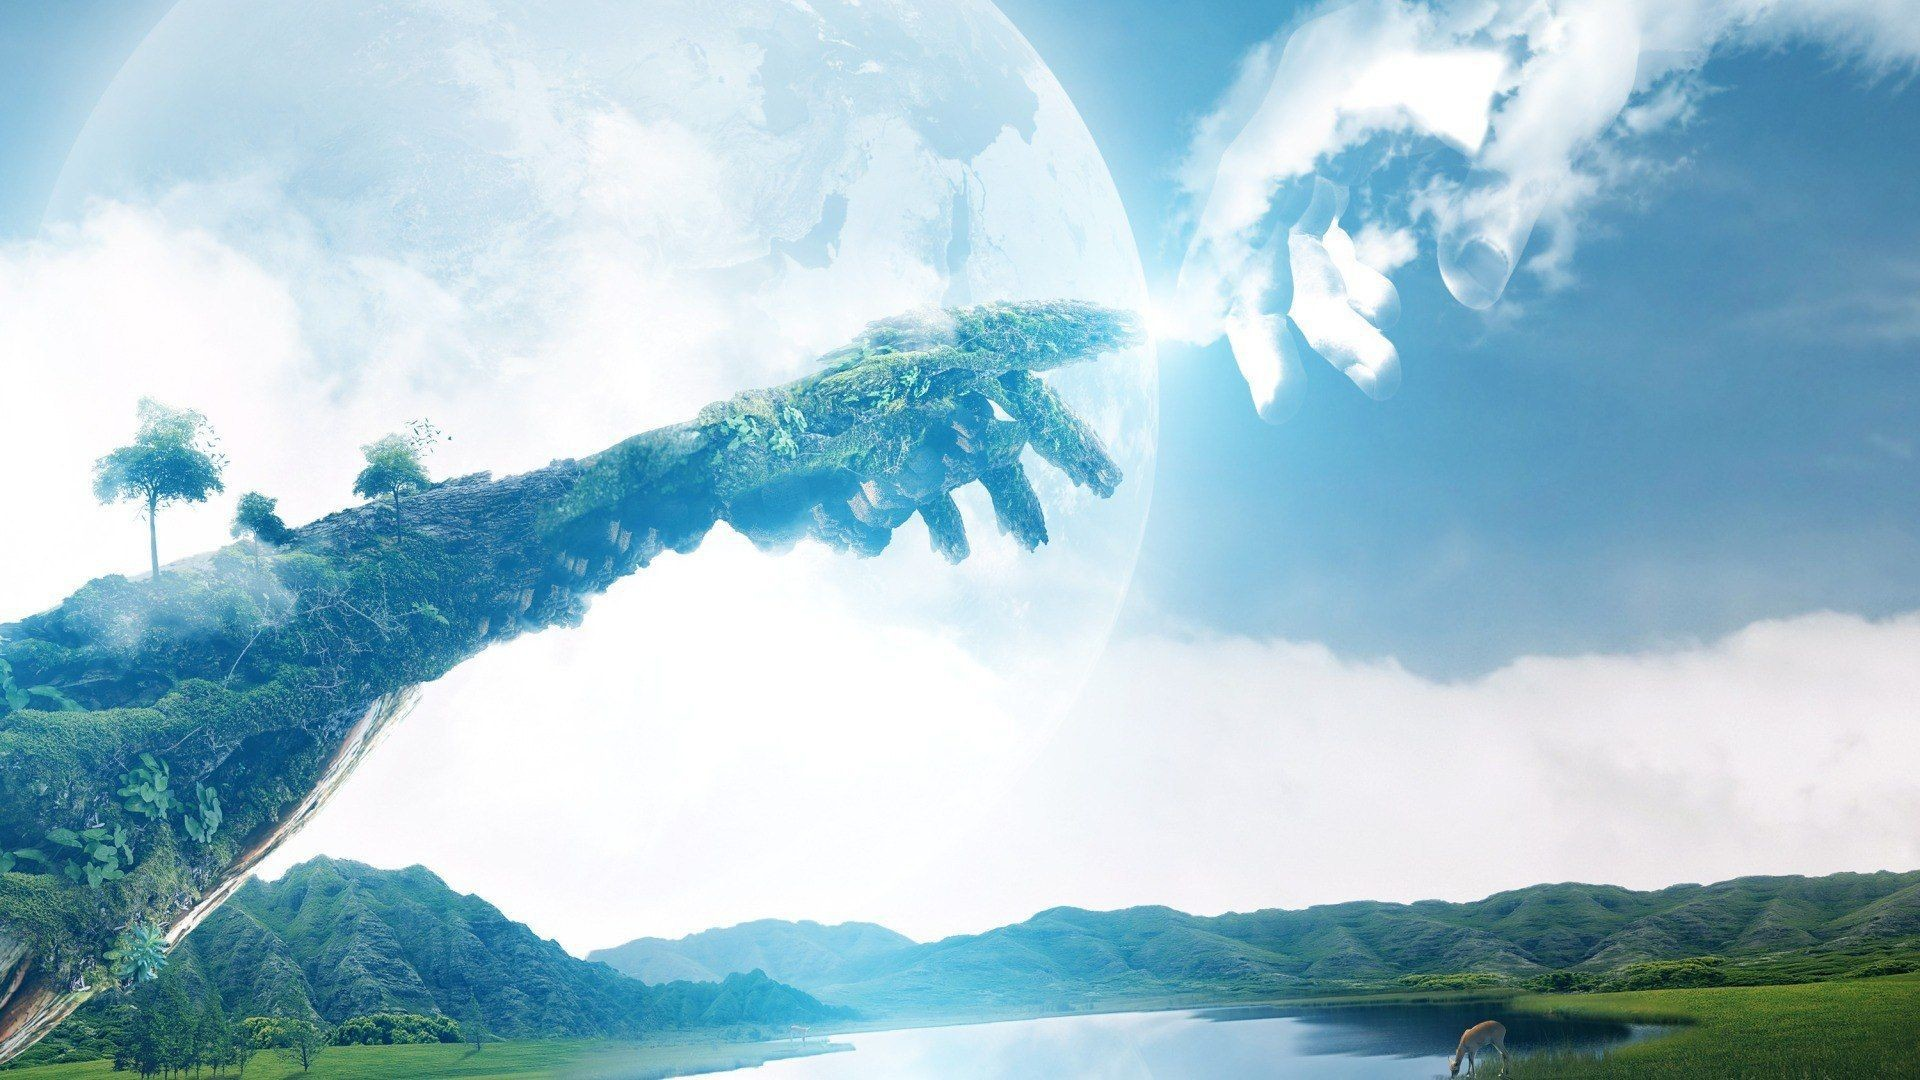 Touching earth to heaven wallpapers and images – wallpapers .